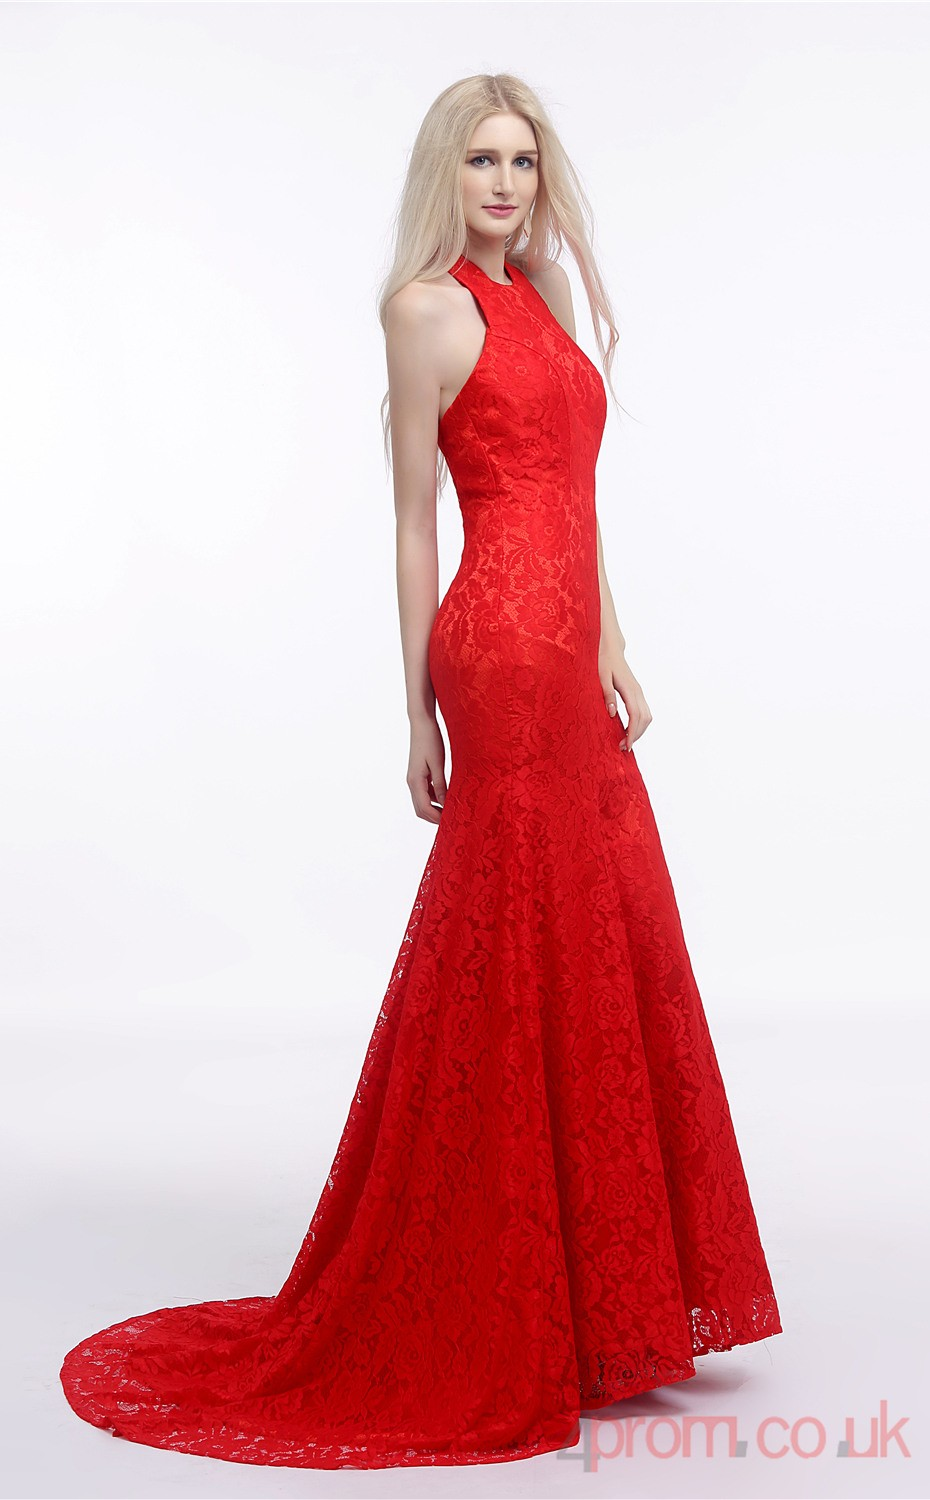 5540309be0e Red Lace Ball Gown Uk - Gomes Weine AG